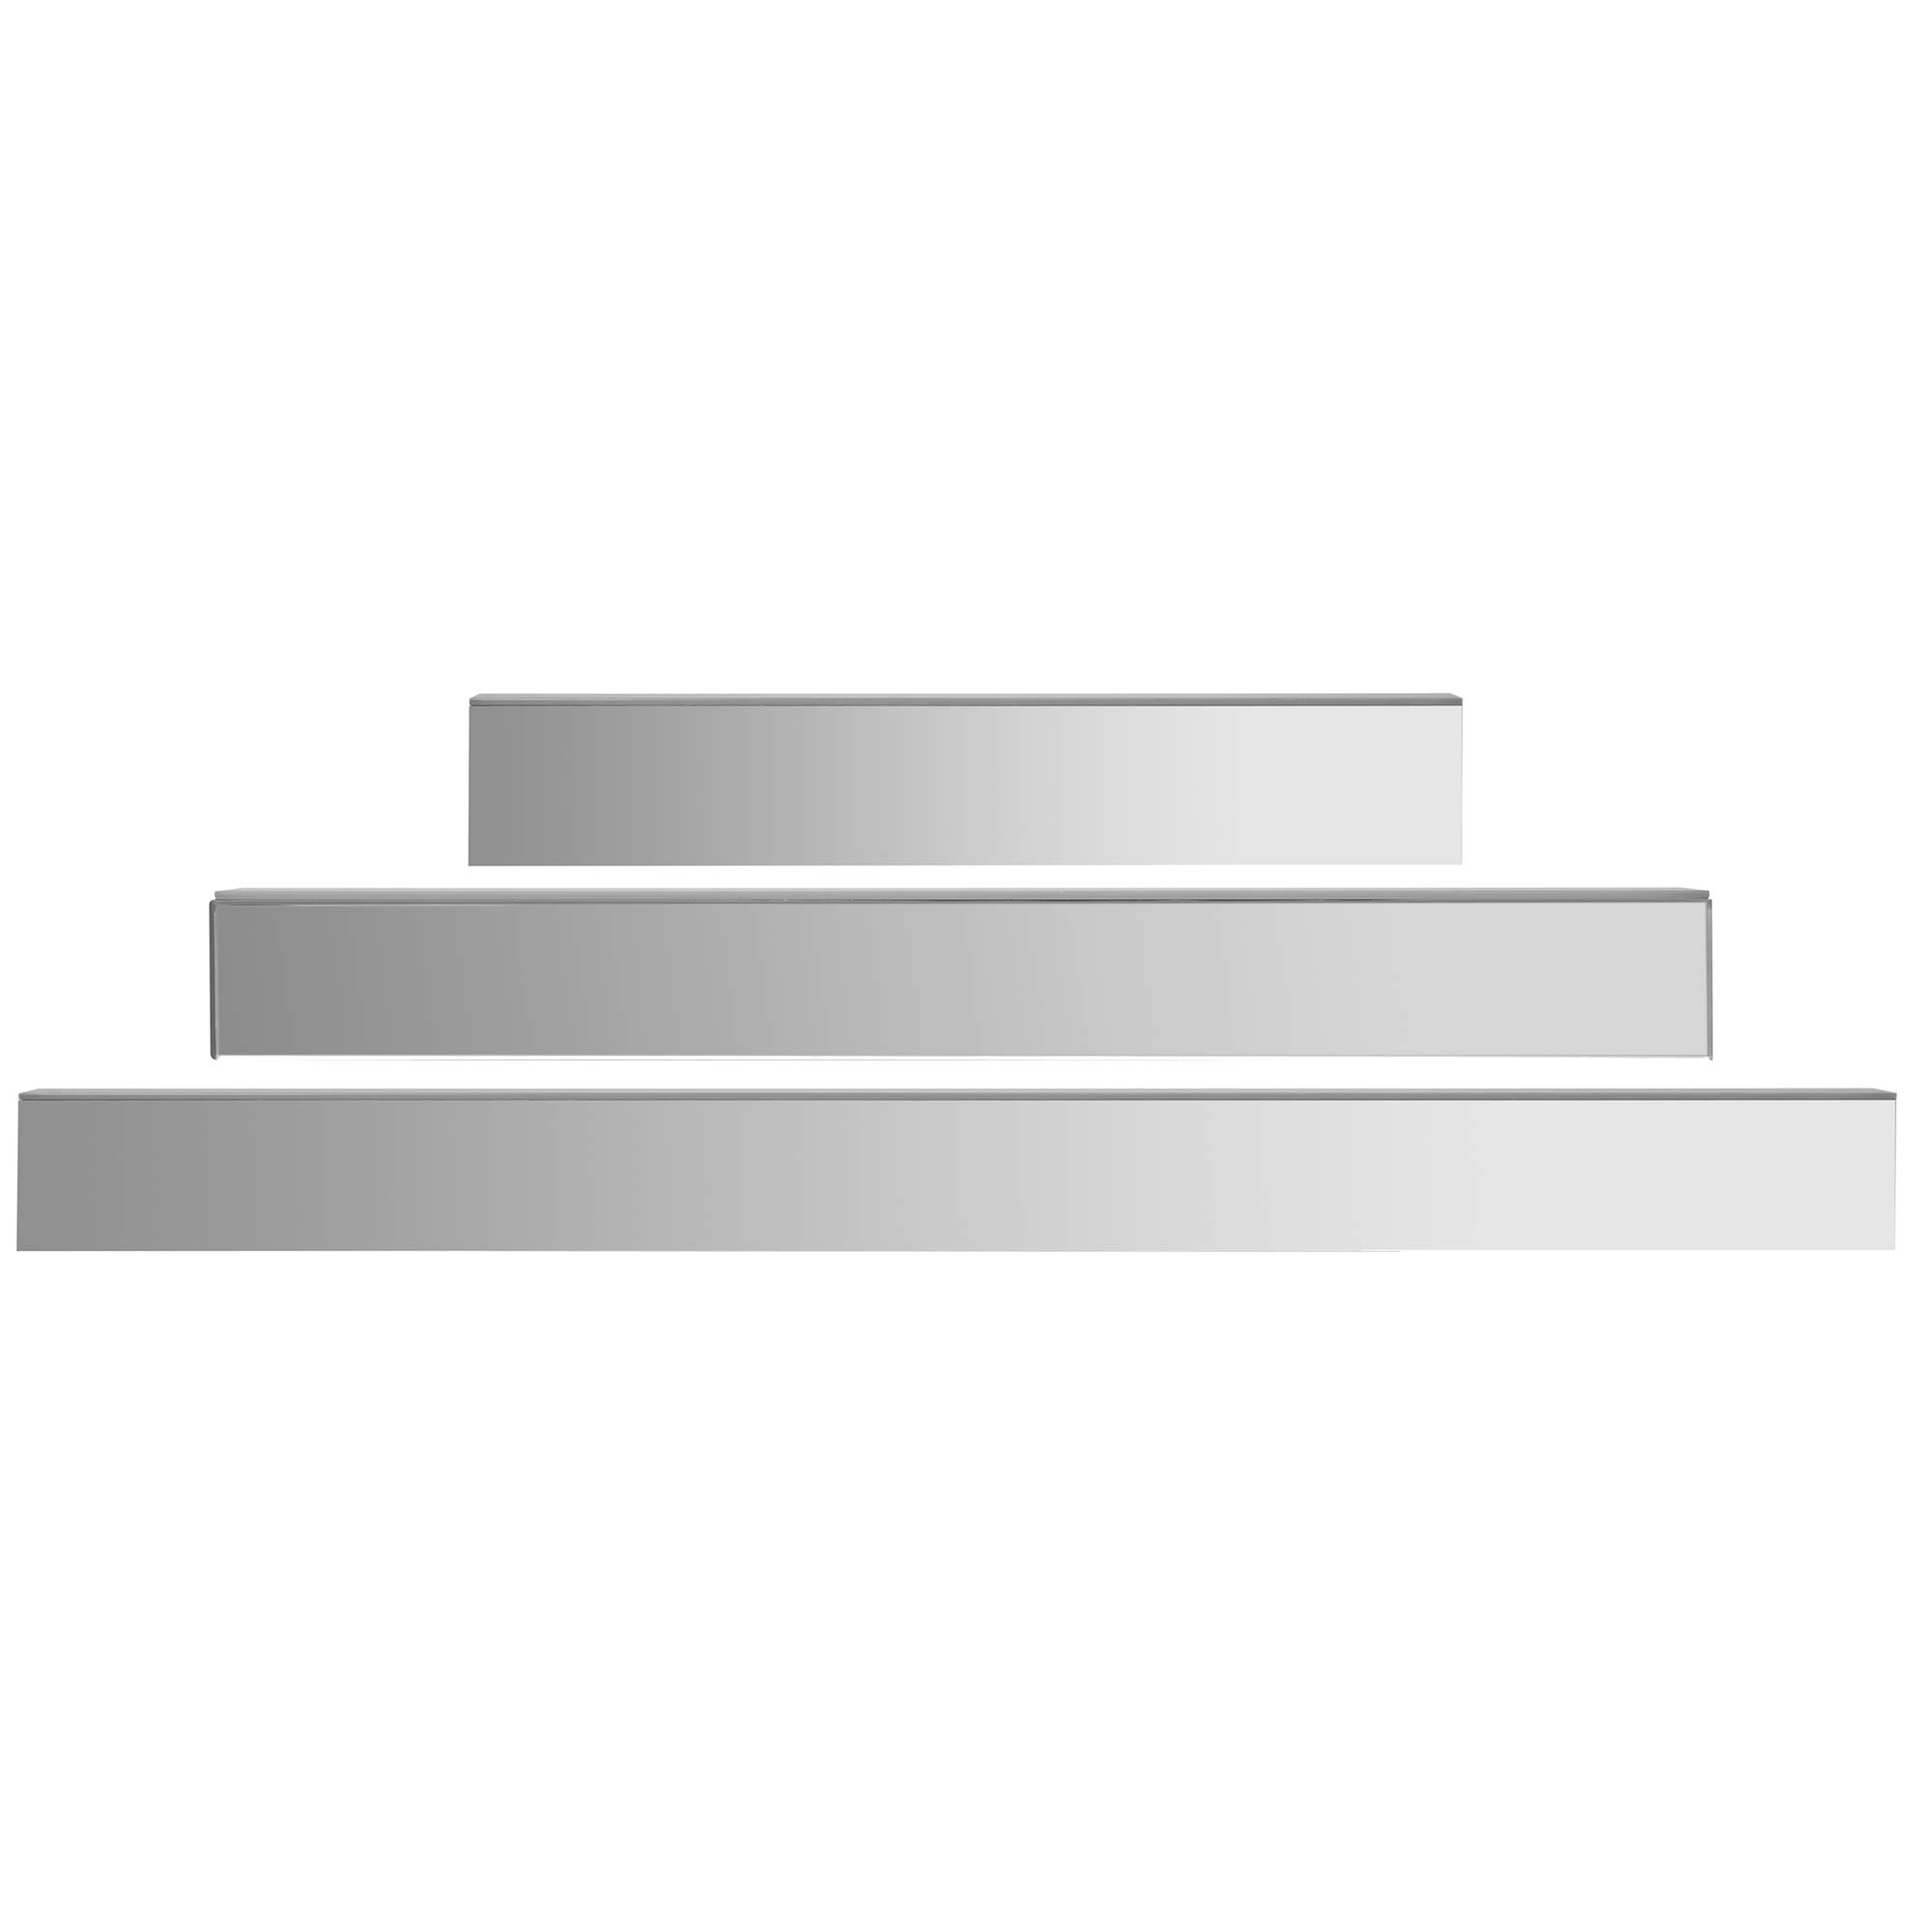 Awe Inspiring Details About Everly Hart Collection Mirrored Floating Shelf Ledge Set Wall Shelves Silver Interior Design Ideas Gentotryabchikinfo